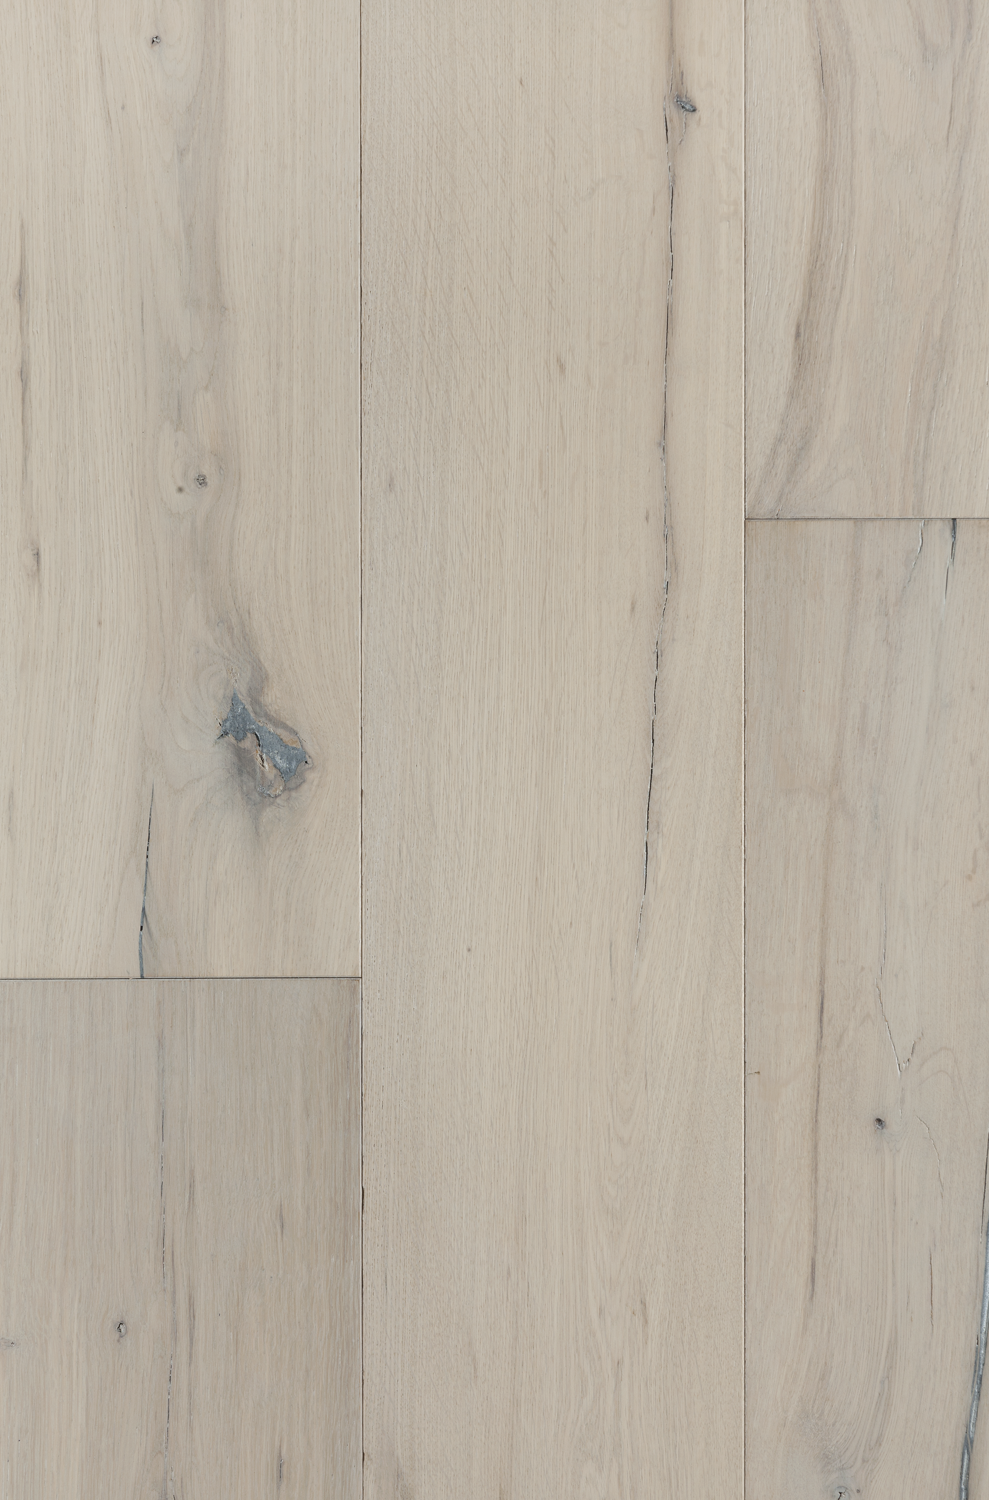 Lm Flooring St Laurent Privas Hardwood Flooring